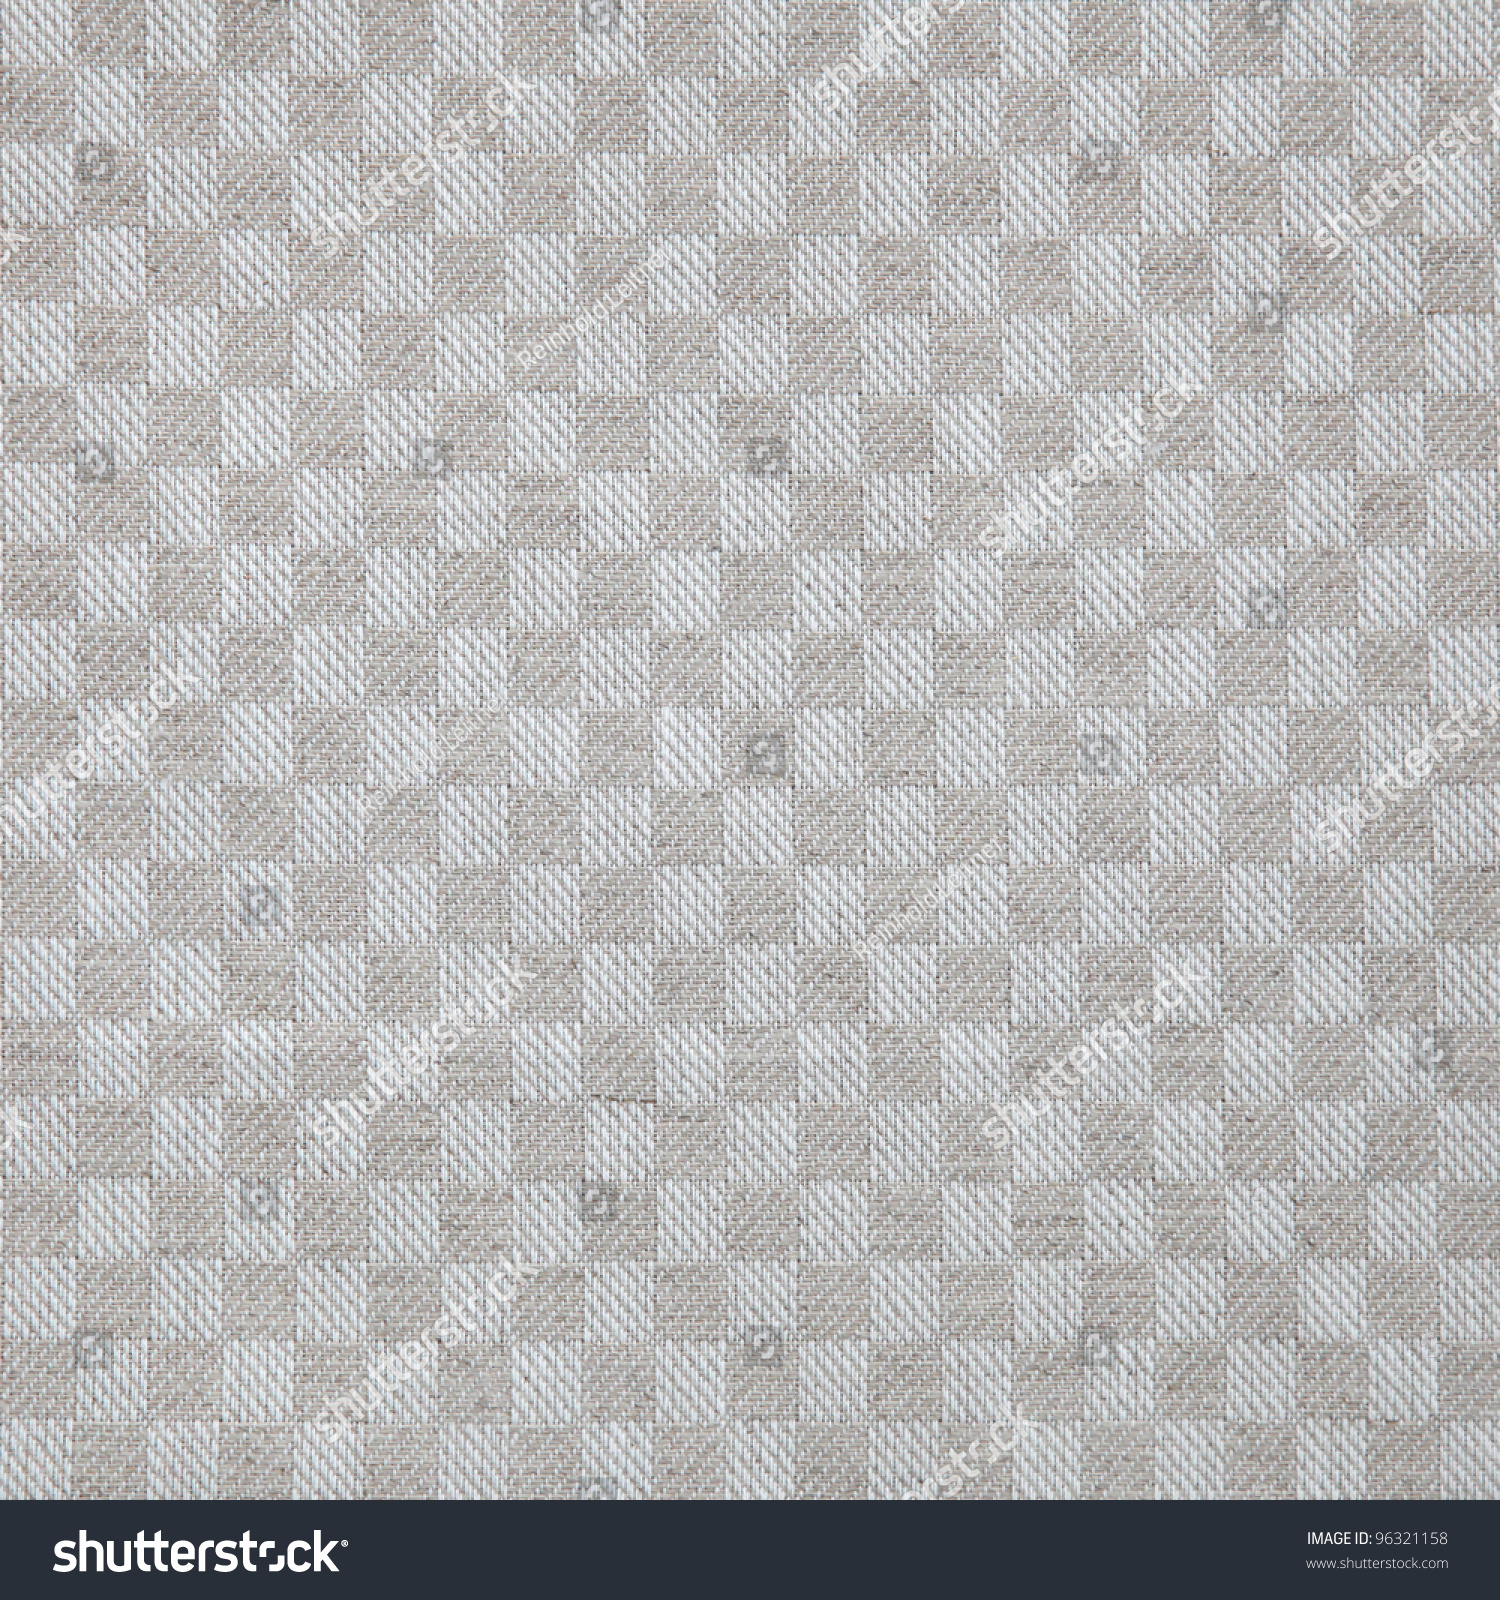 Line Texture Photo : Linen texture stock photo shutterstock